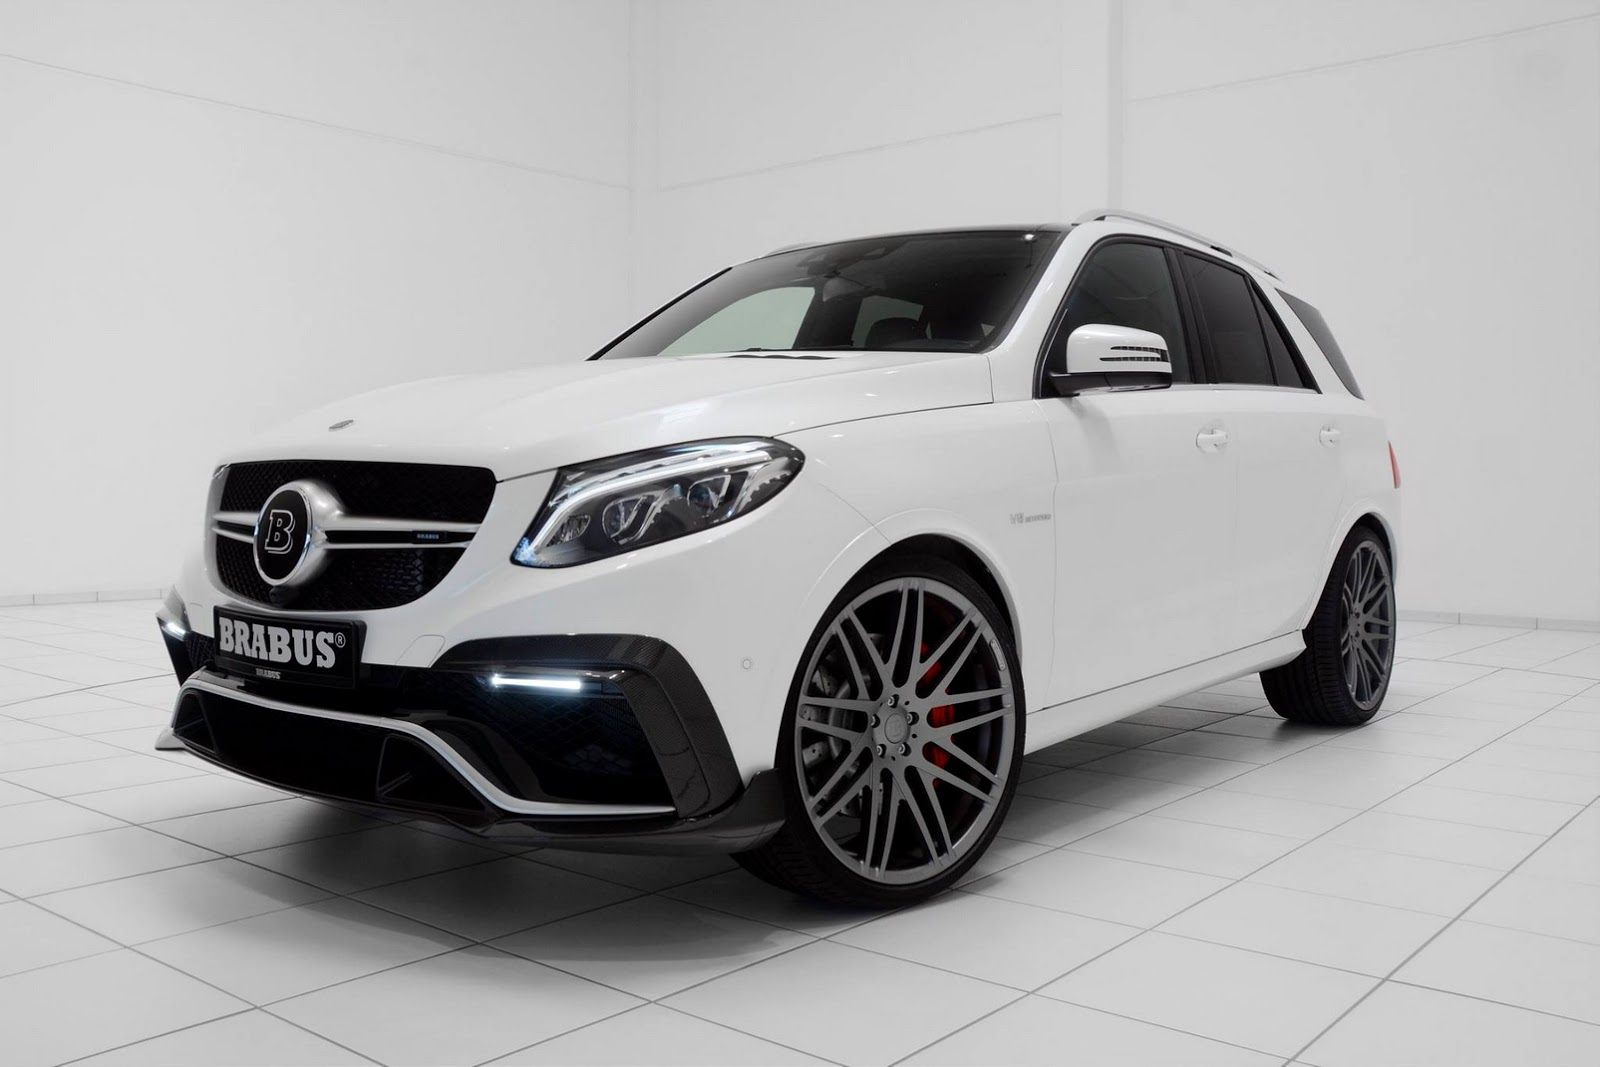 Mercedes w166 gle 63 brabus 850 6 0 benztuning for Mercedes benz 850